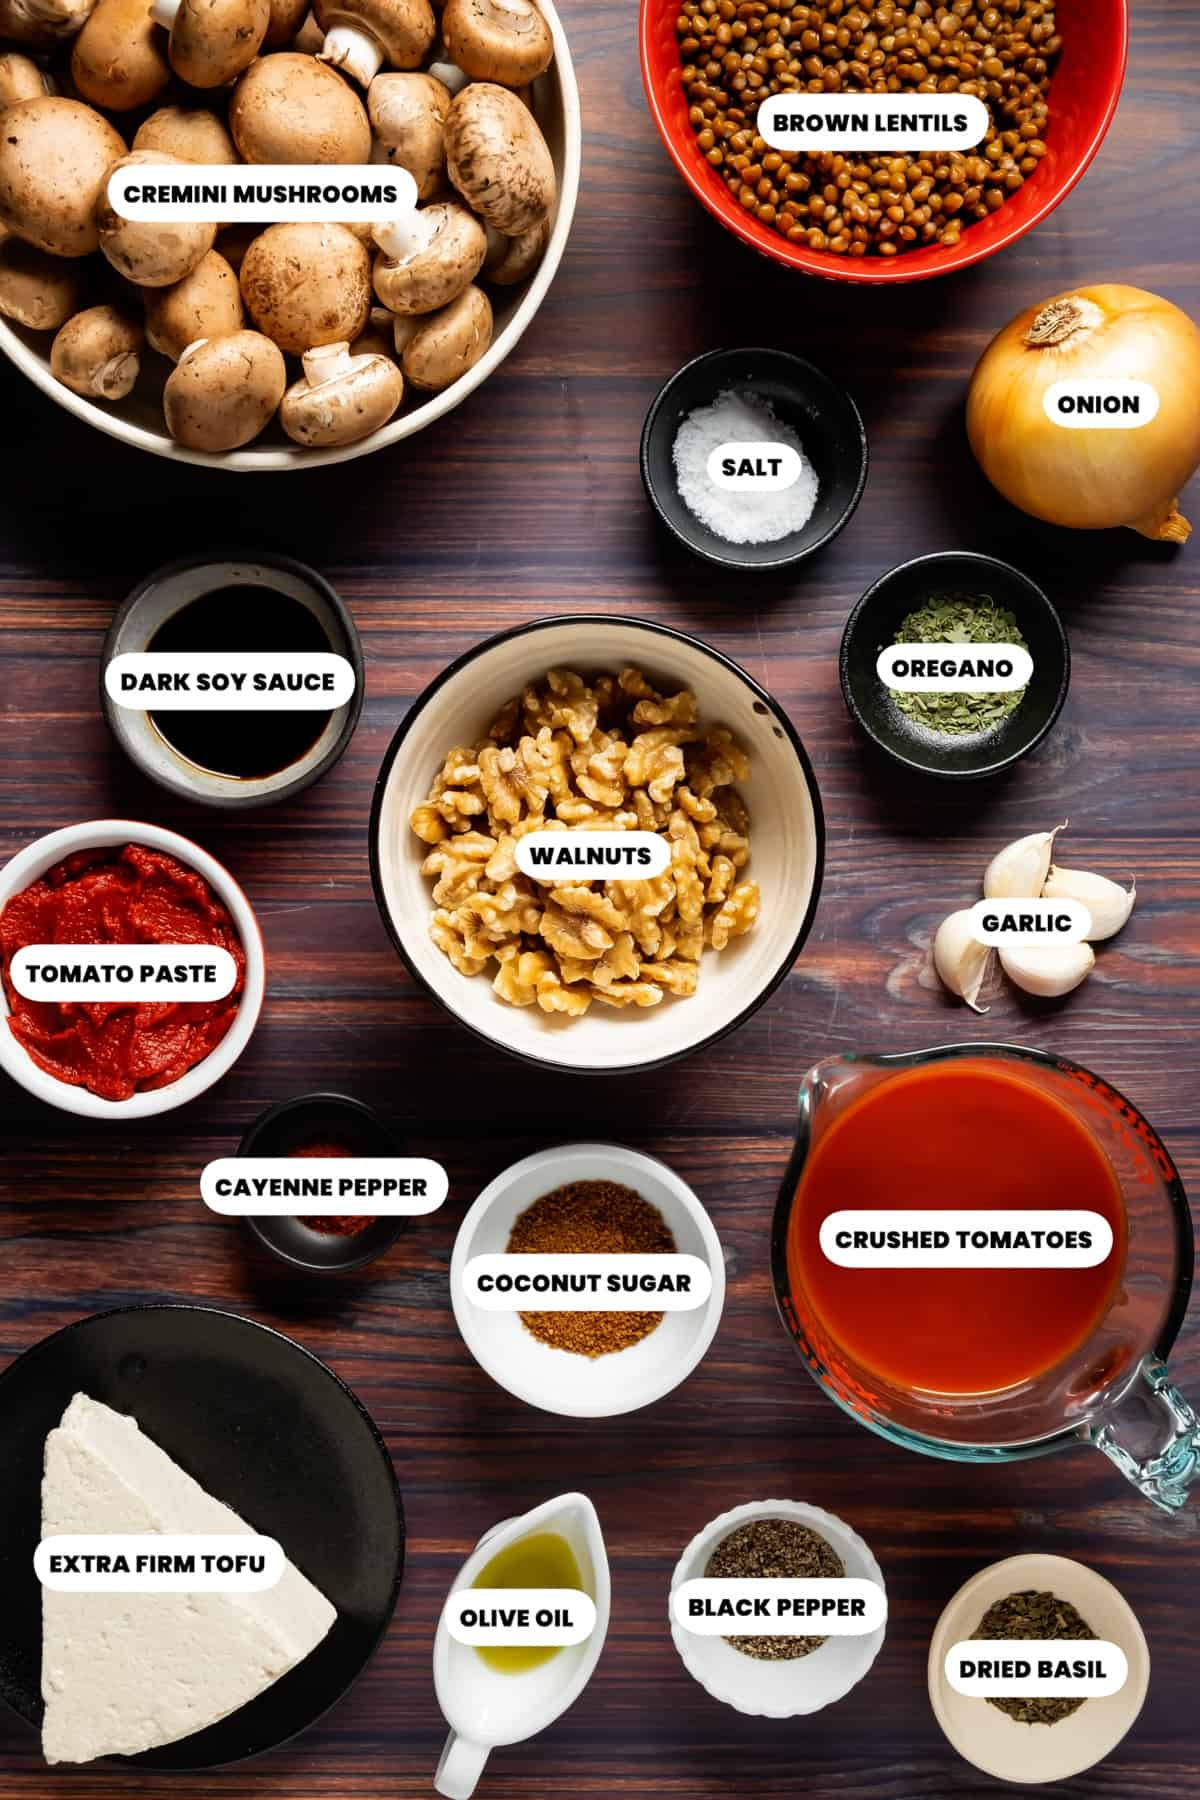 Photo of the ingredients needed to make vegan bolognese.